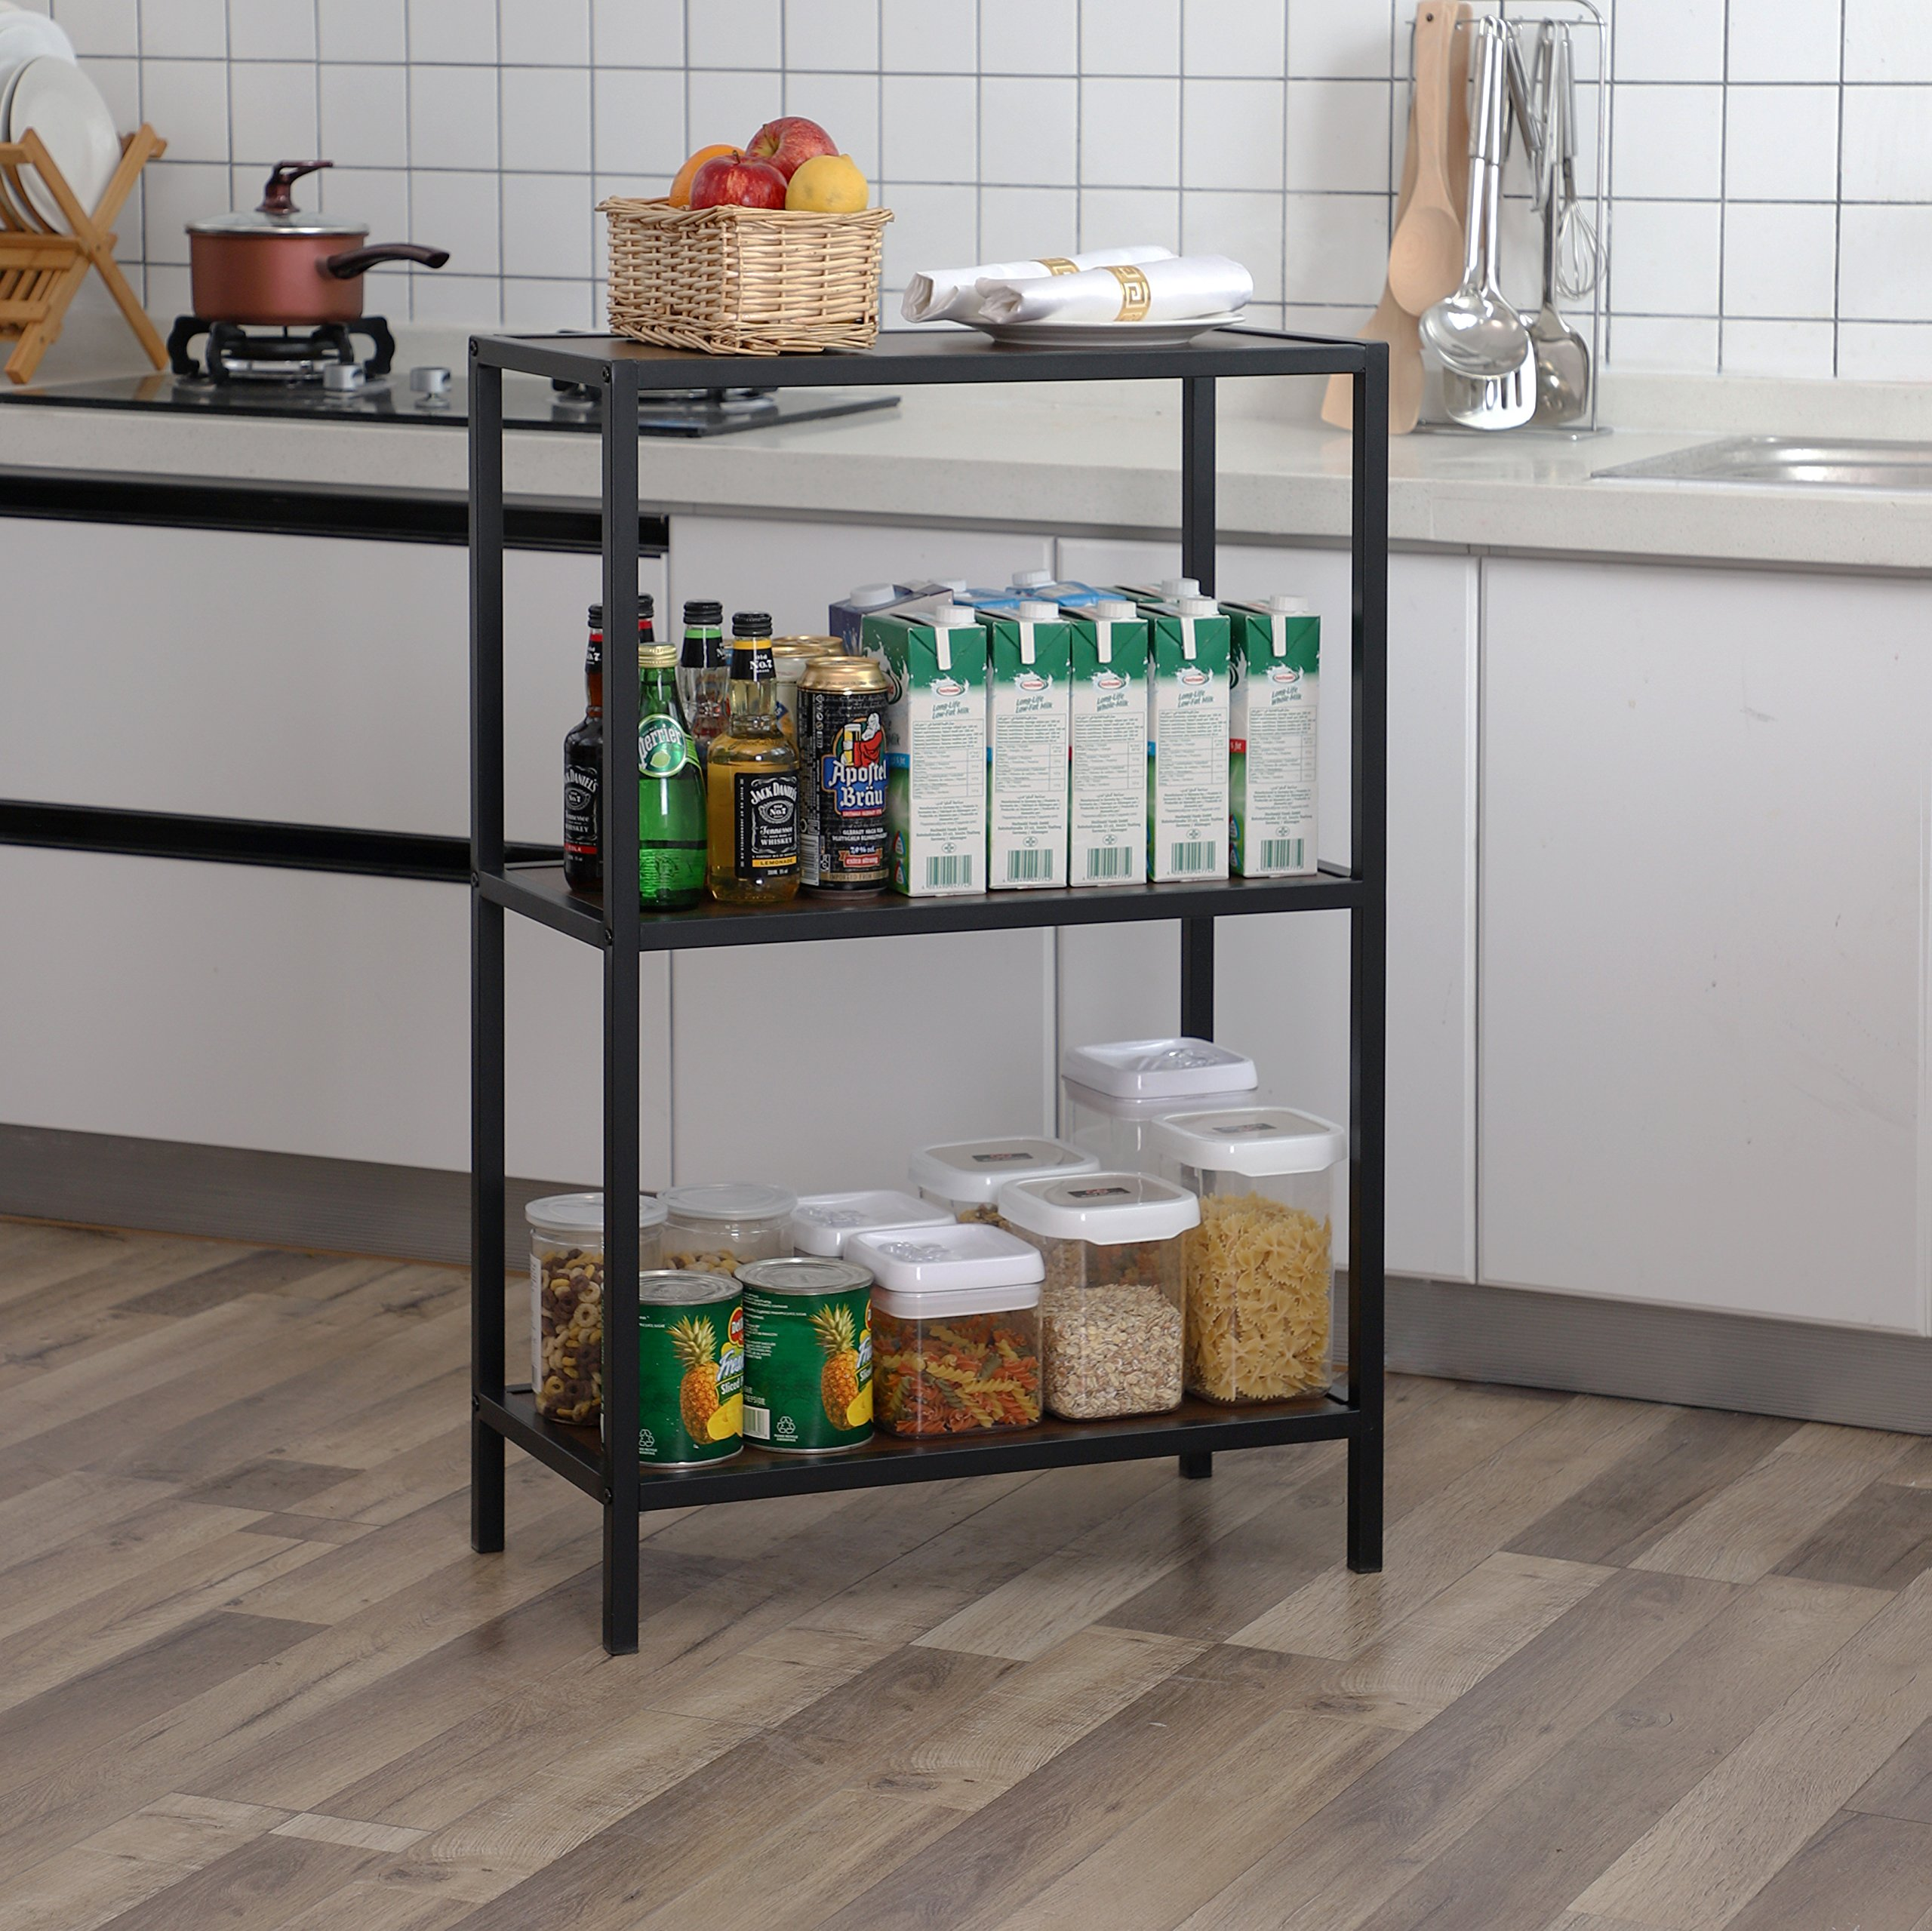 SONGMICS 3-Tier Storage Shelf Rack, Multifunctional Bookcase, Metal Frame Display Rack,Shelving Unit for Kitchen, Living Room,Rustic, ULSS90BX by SONGMICS (Image #4)